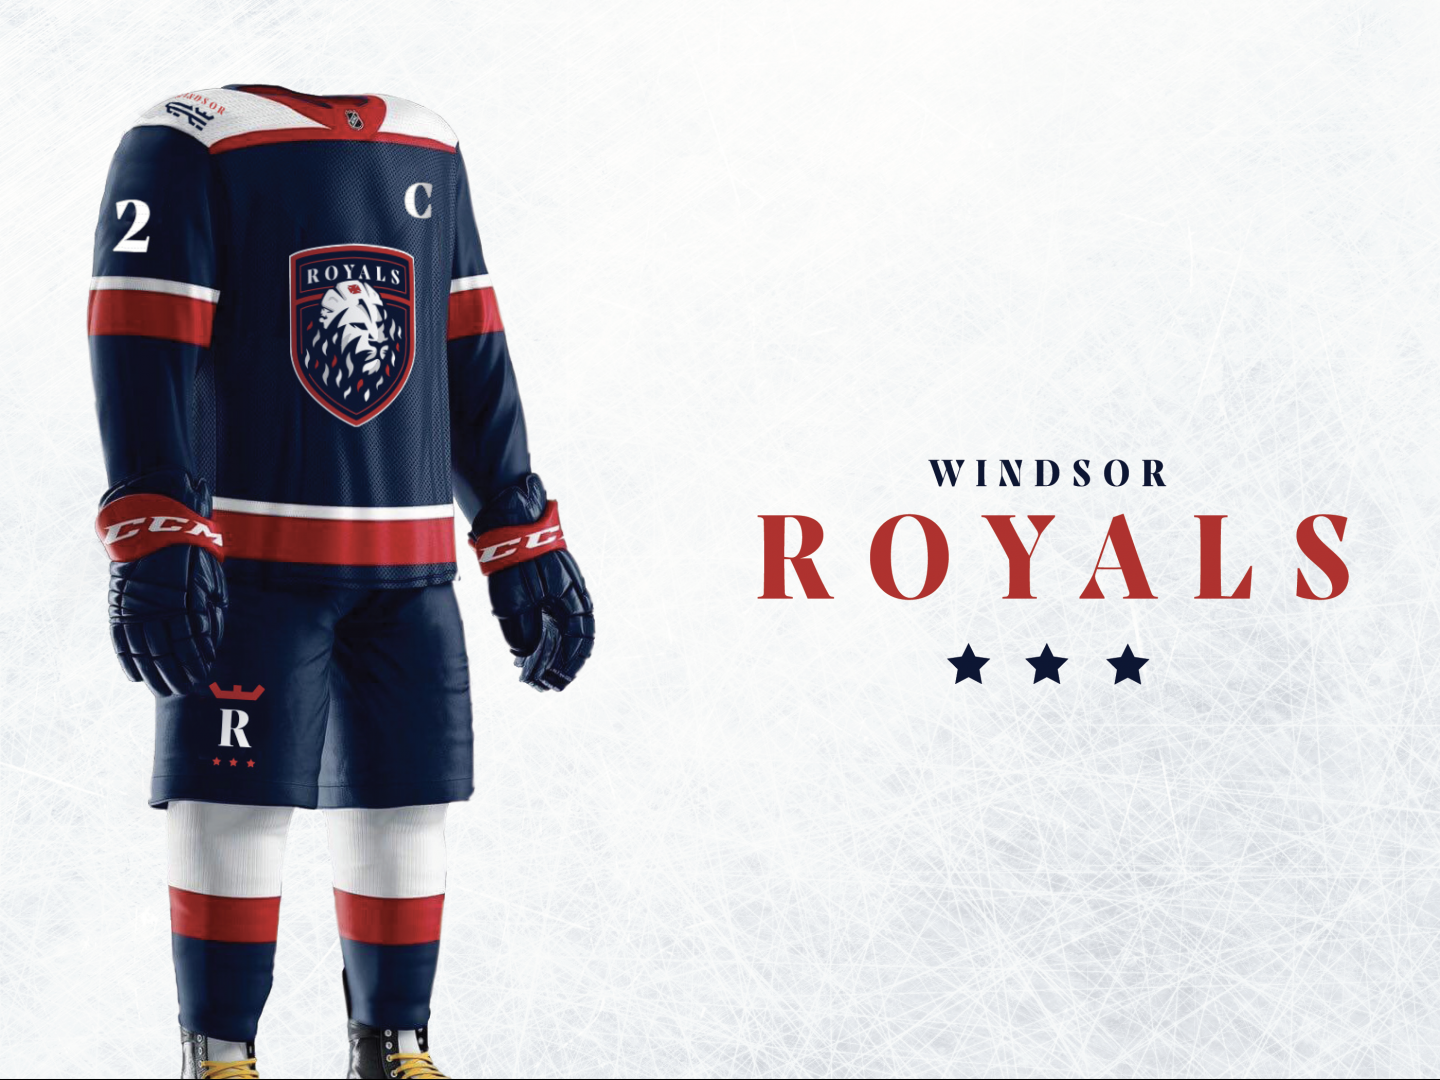 Windsor Royals Branding Thumbnail